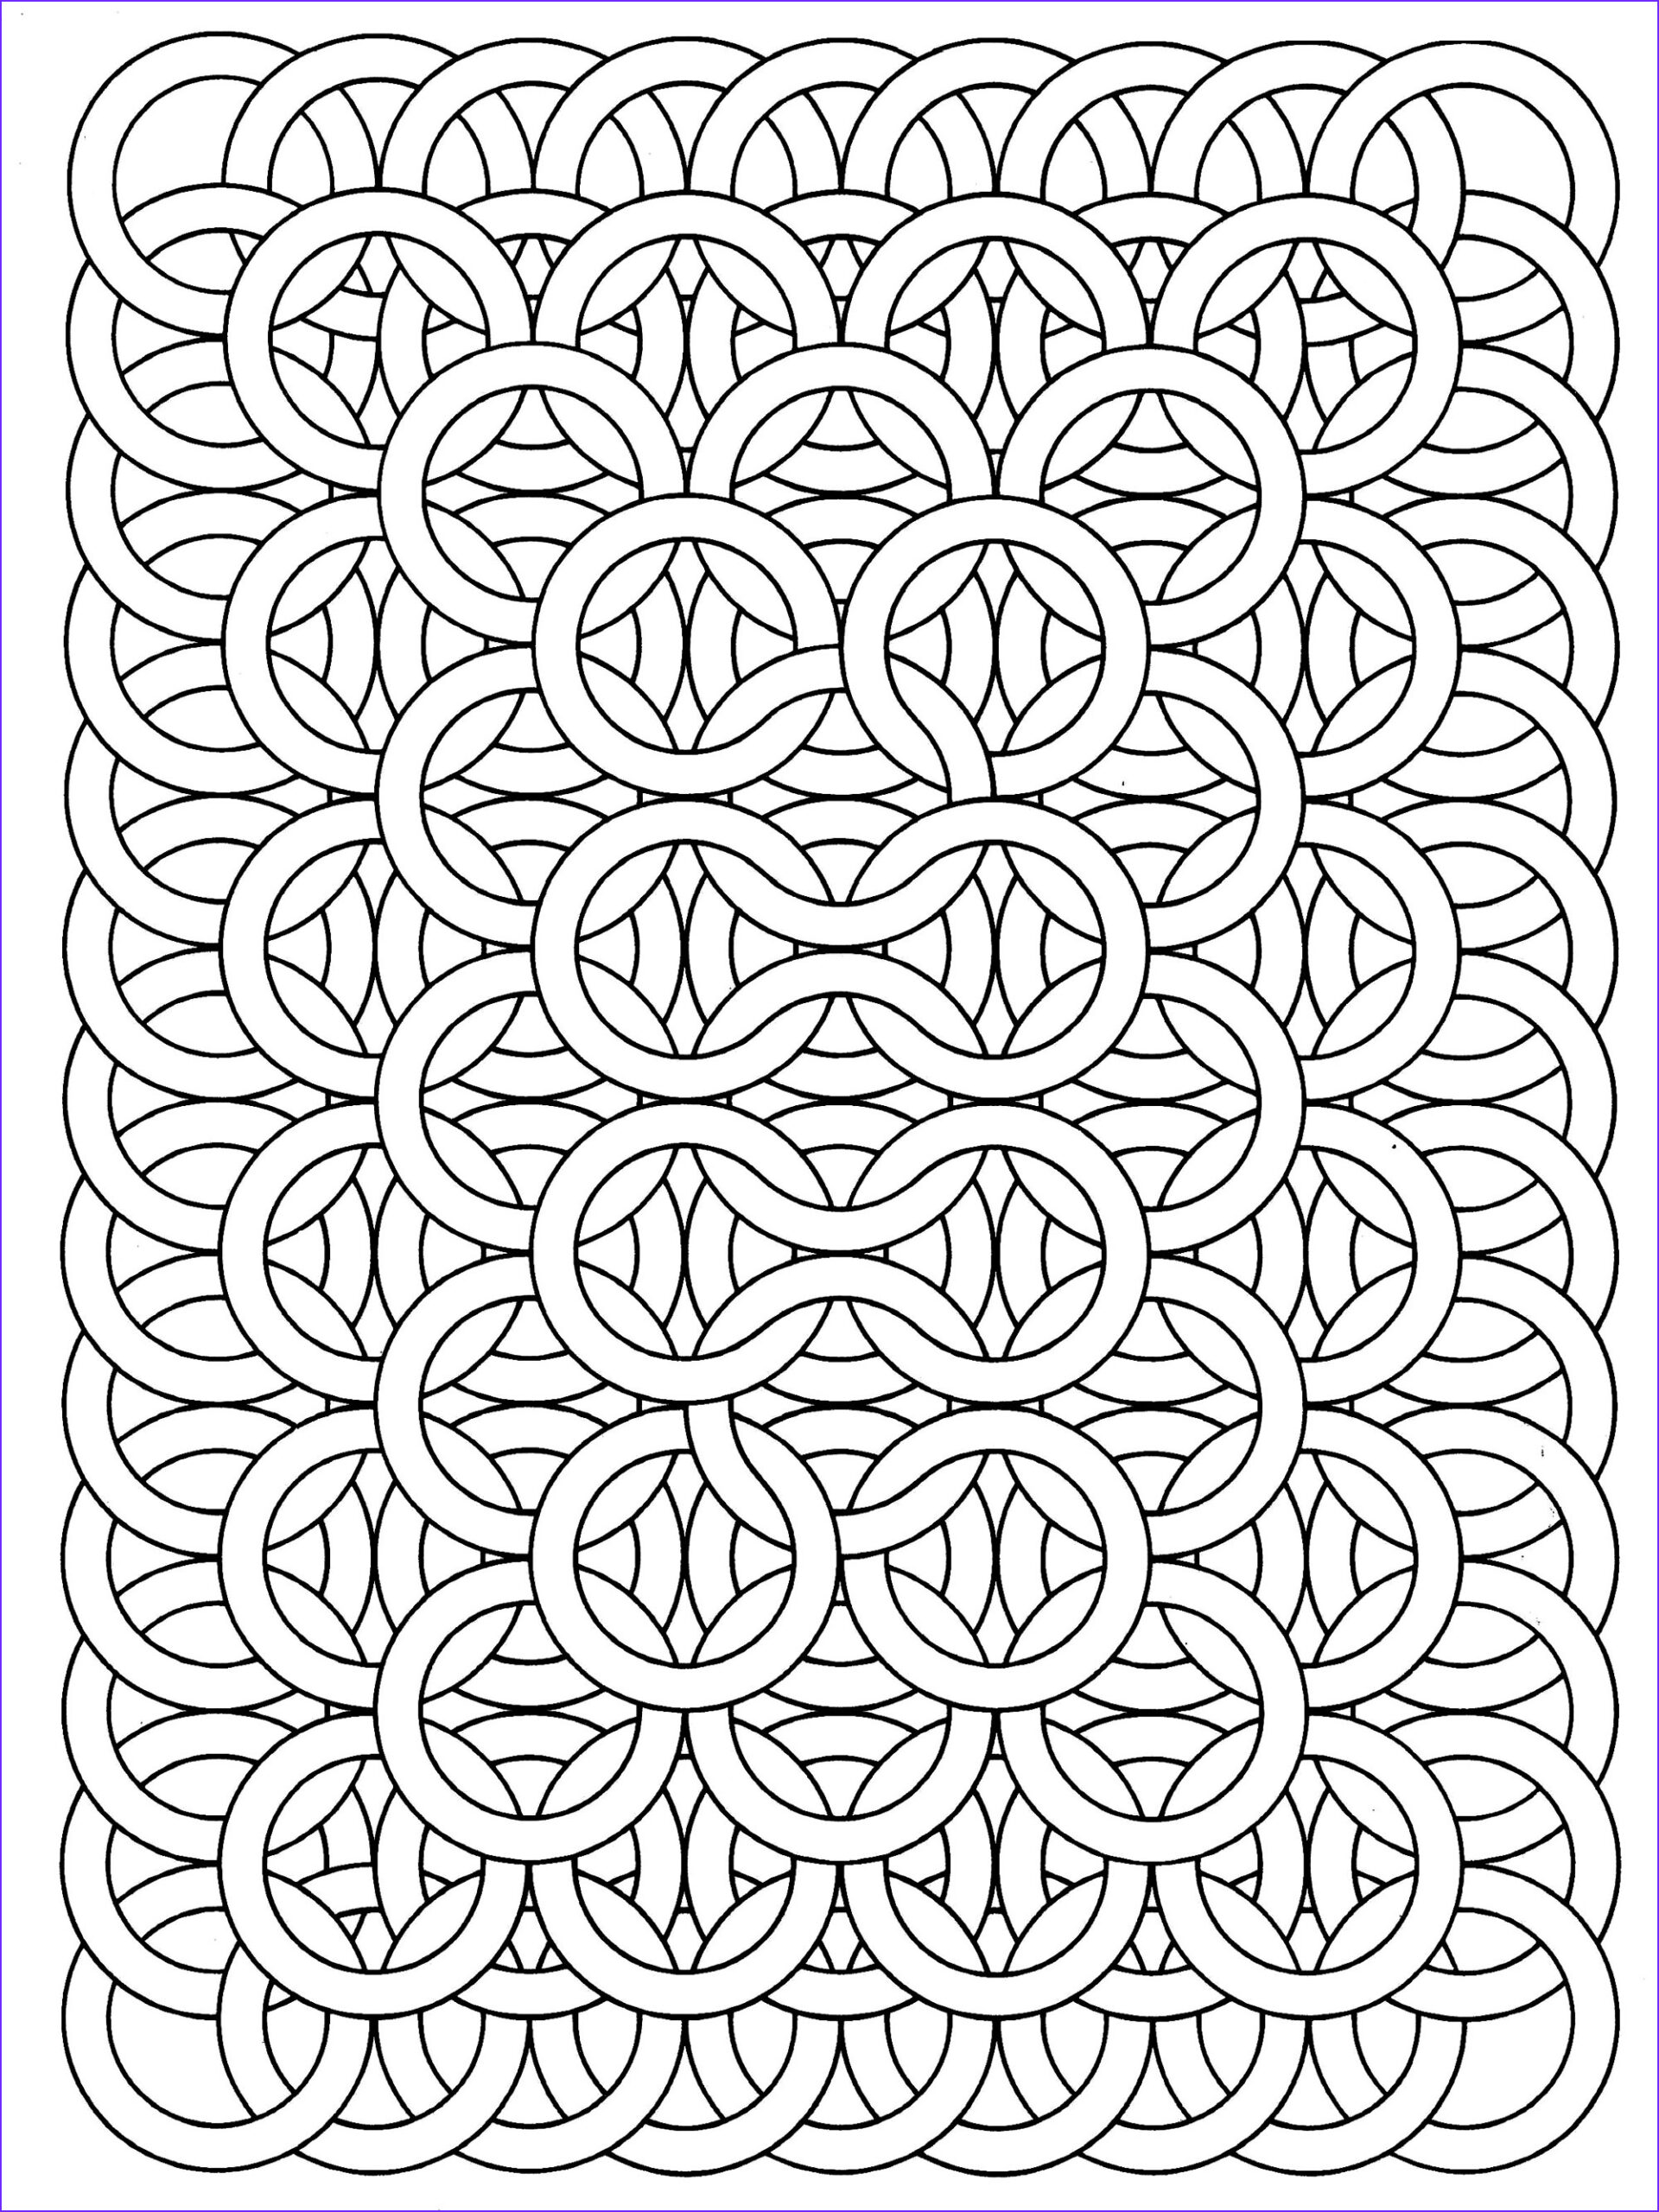 Coloring Pictures for Adults Inspirational Photos Free Adult Coloring Pages Happiness is Homemade